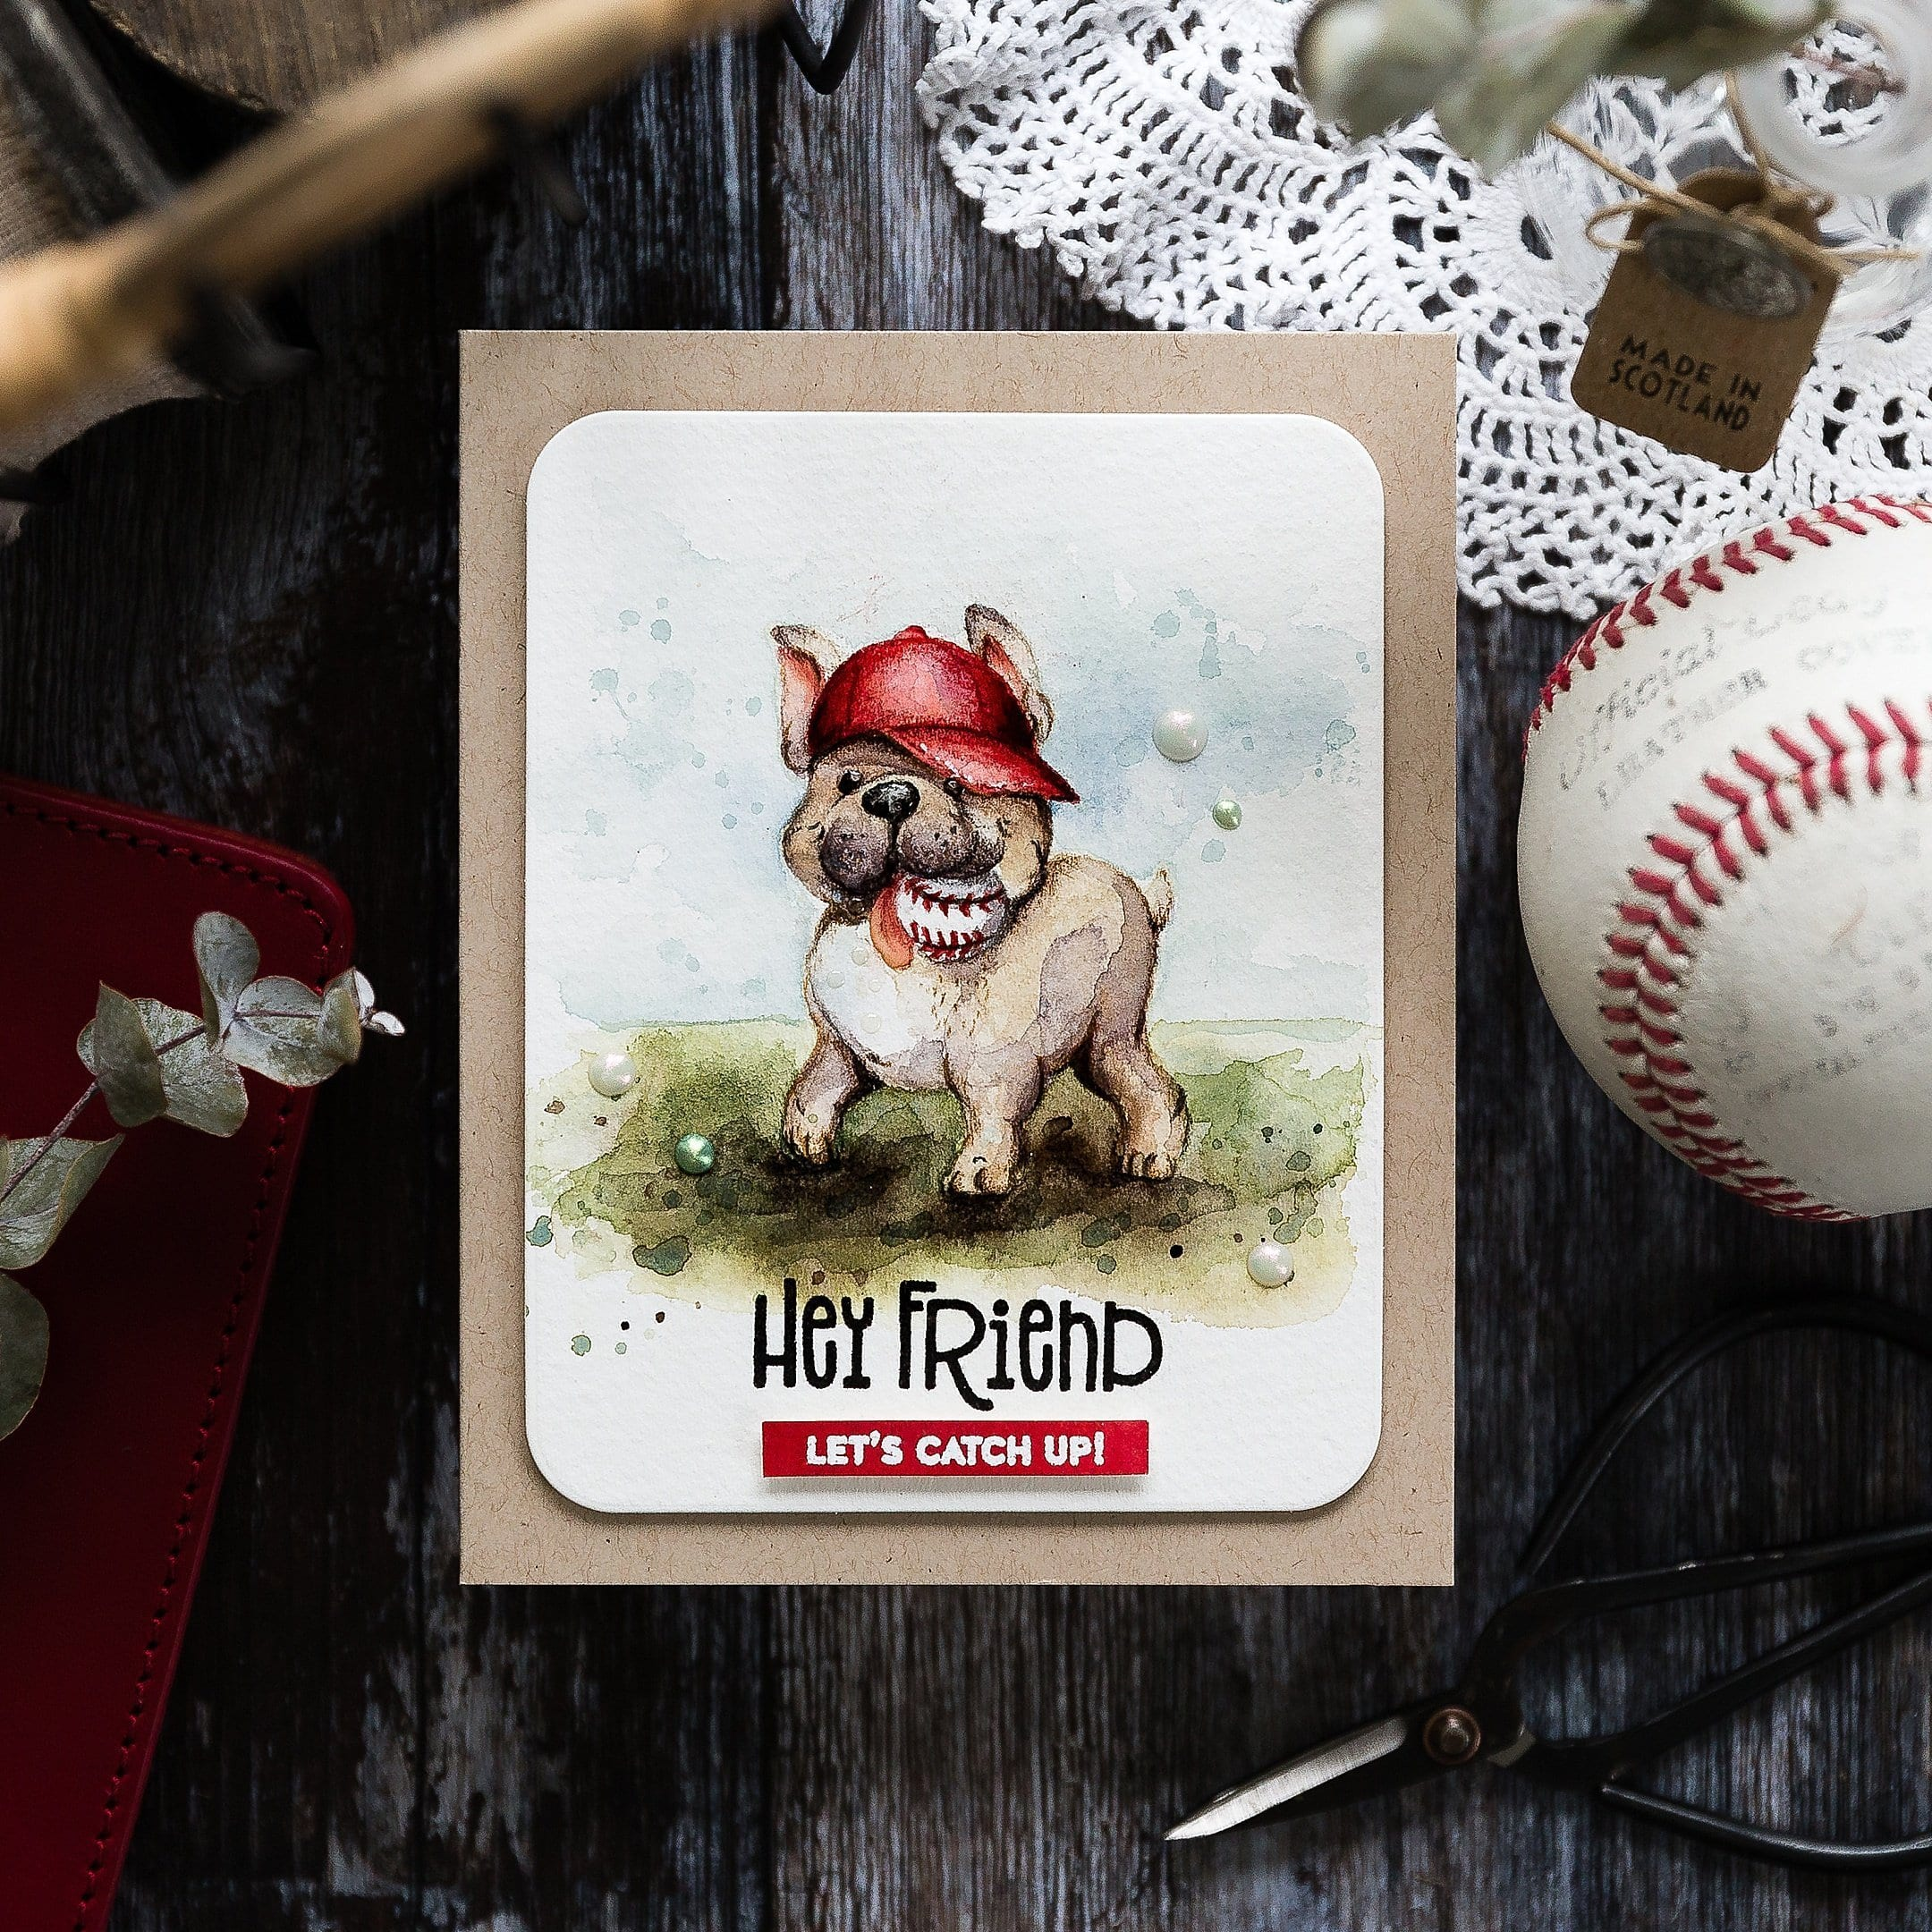 Watercoloured Frenchie, French Bulldog, dog handmade baseball card by Debby Hughes using supplies from Simon Says Stamp. Find out more here: https://limedoodledesign.com/2019/05/watercoloured-frenchie-sss-new-release/